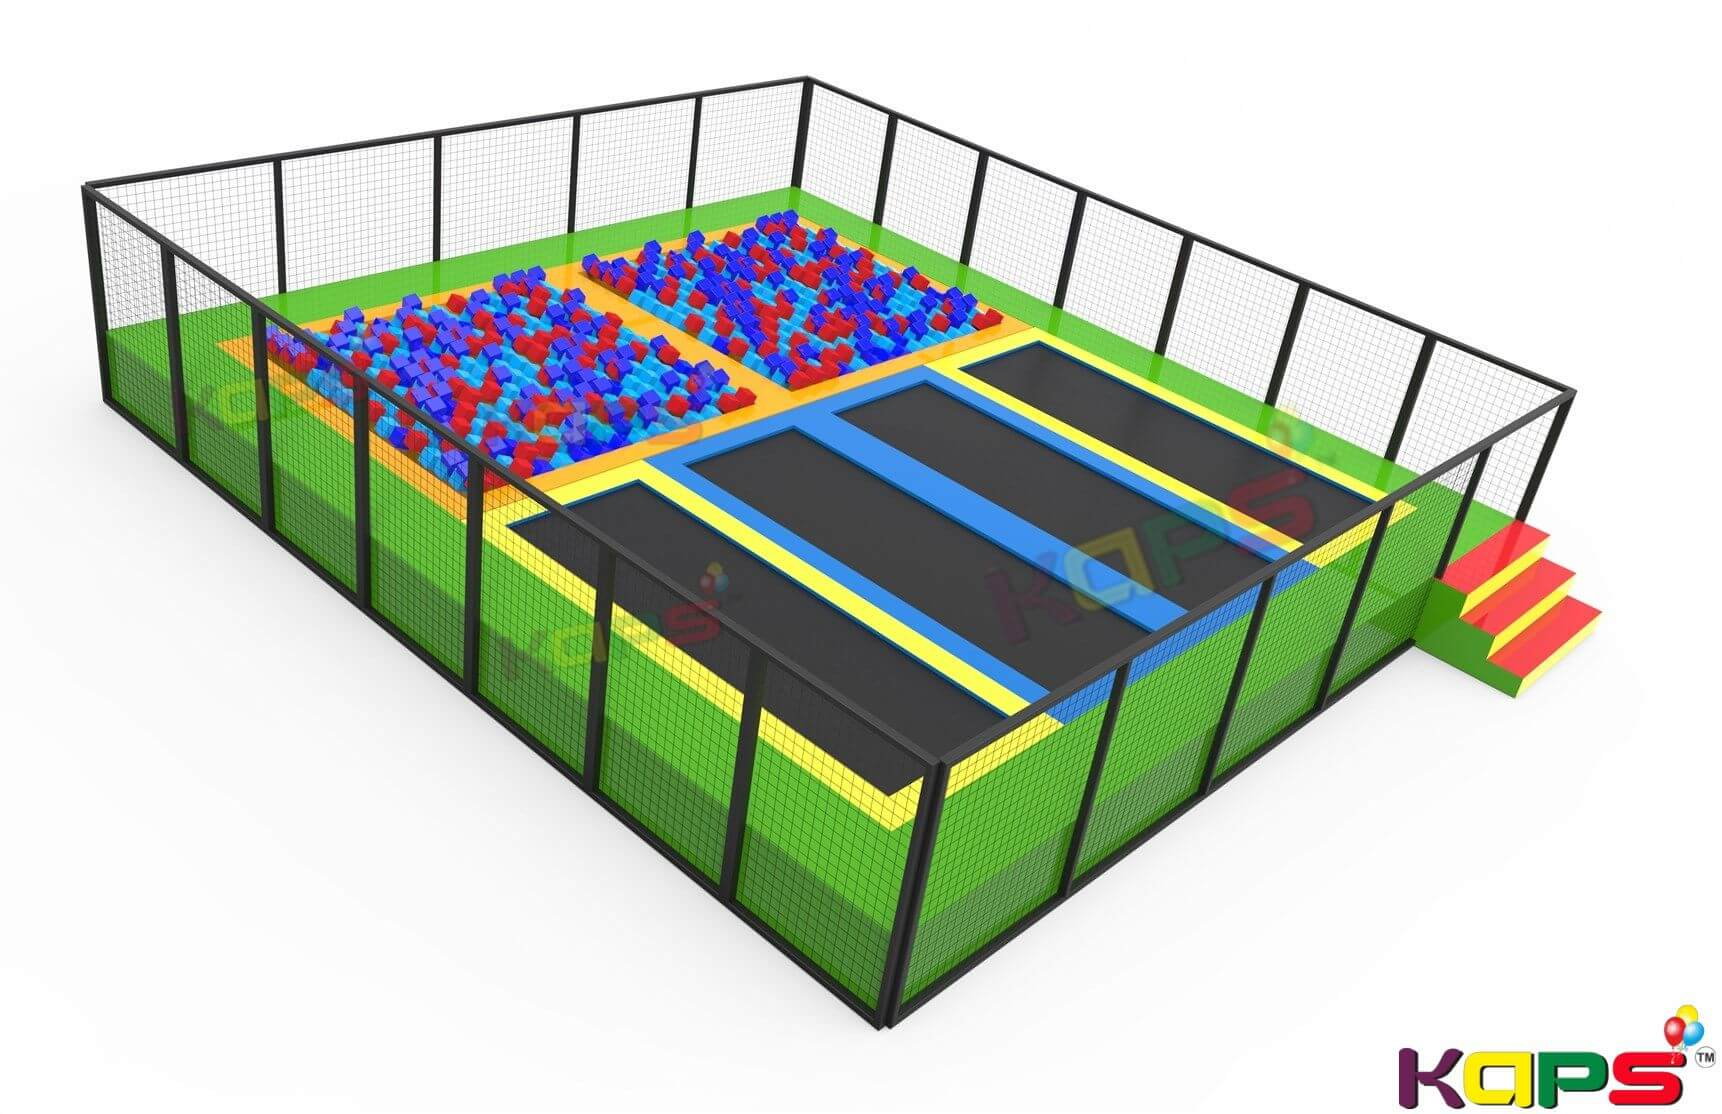 Indoor play equipment firehouse design plans new for Indoor trampoline park design manufacturing